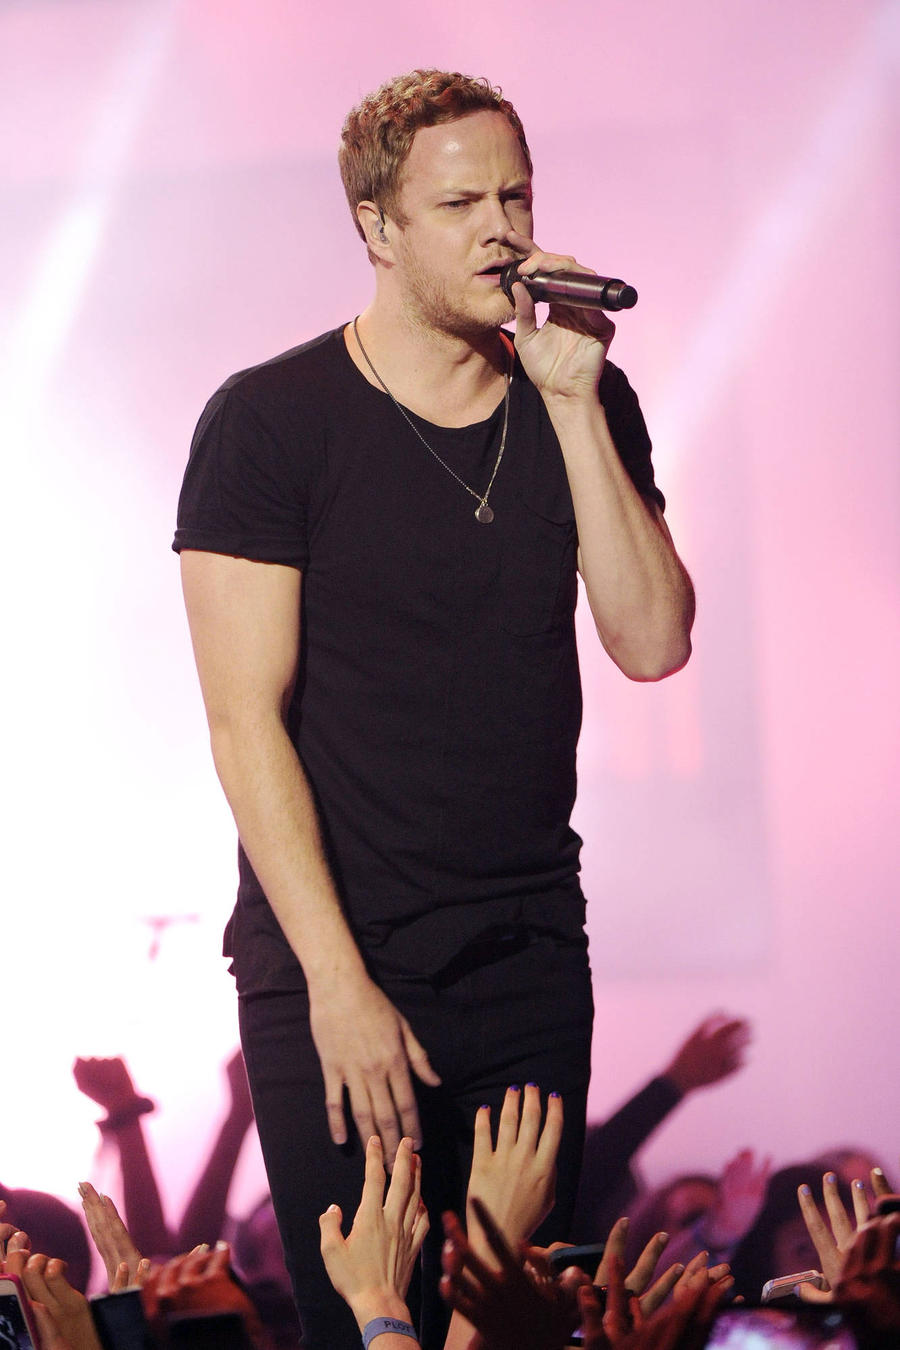 Rocker Dan Reynolds 'Grateful' For Struggles Of Arthritis Condition